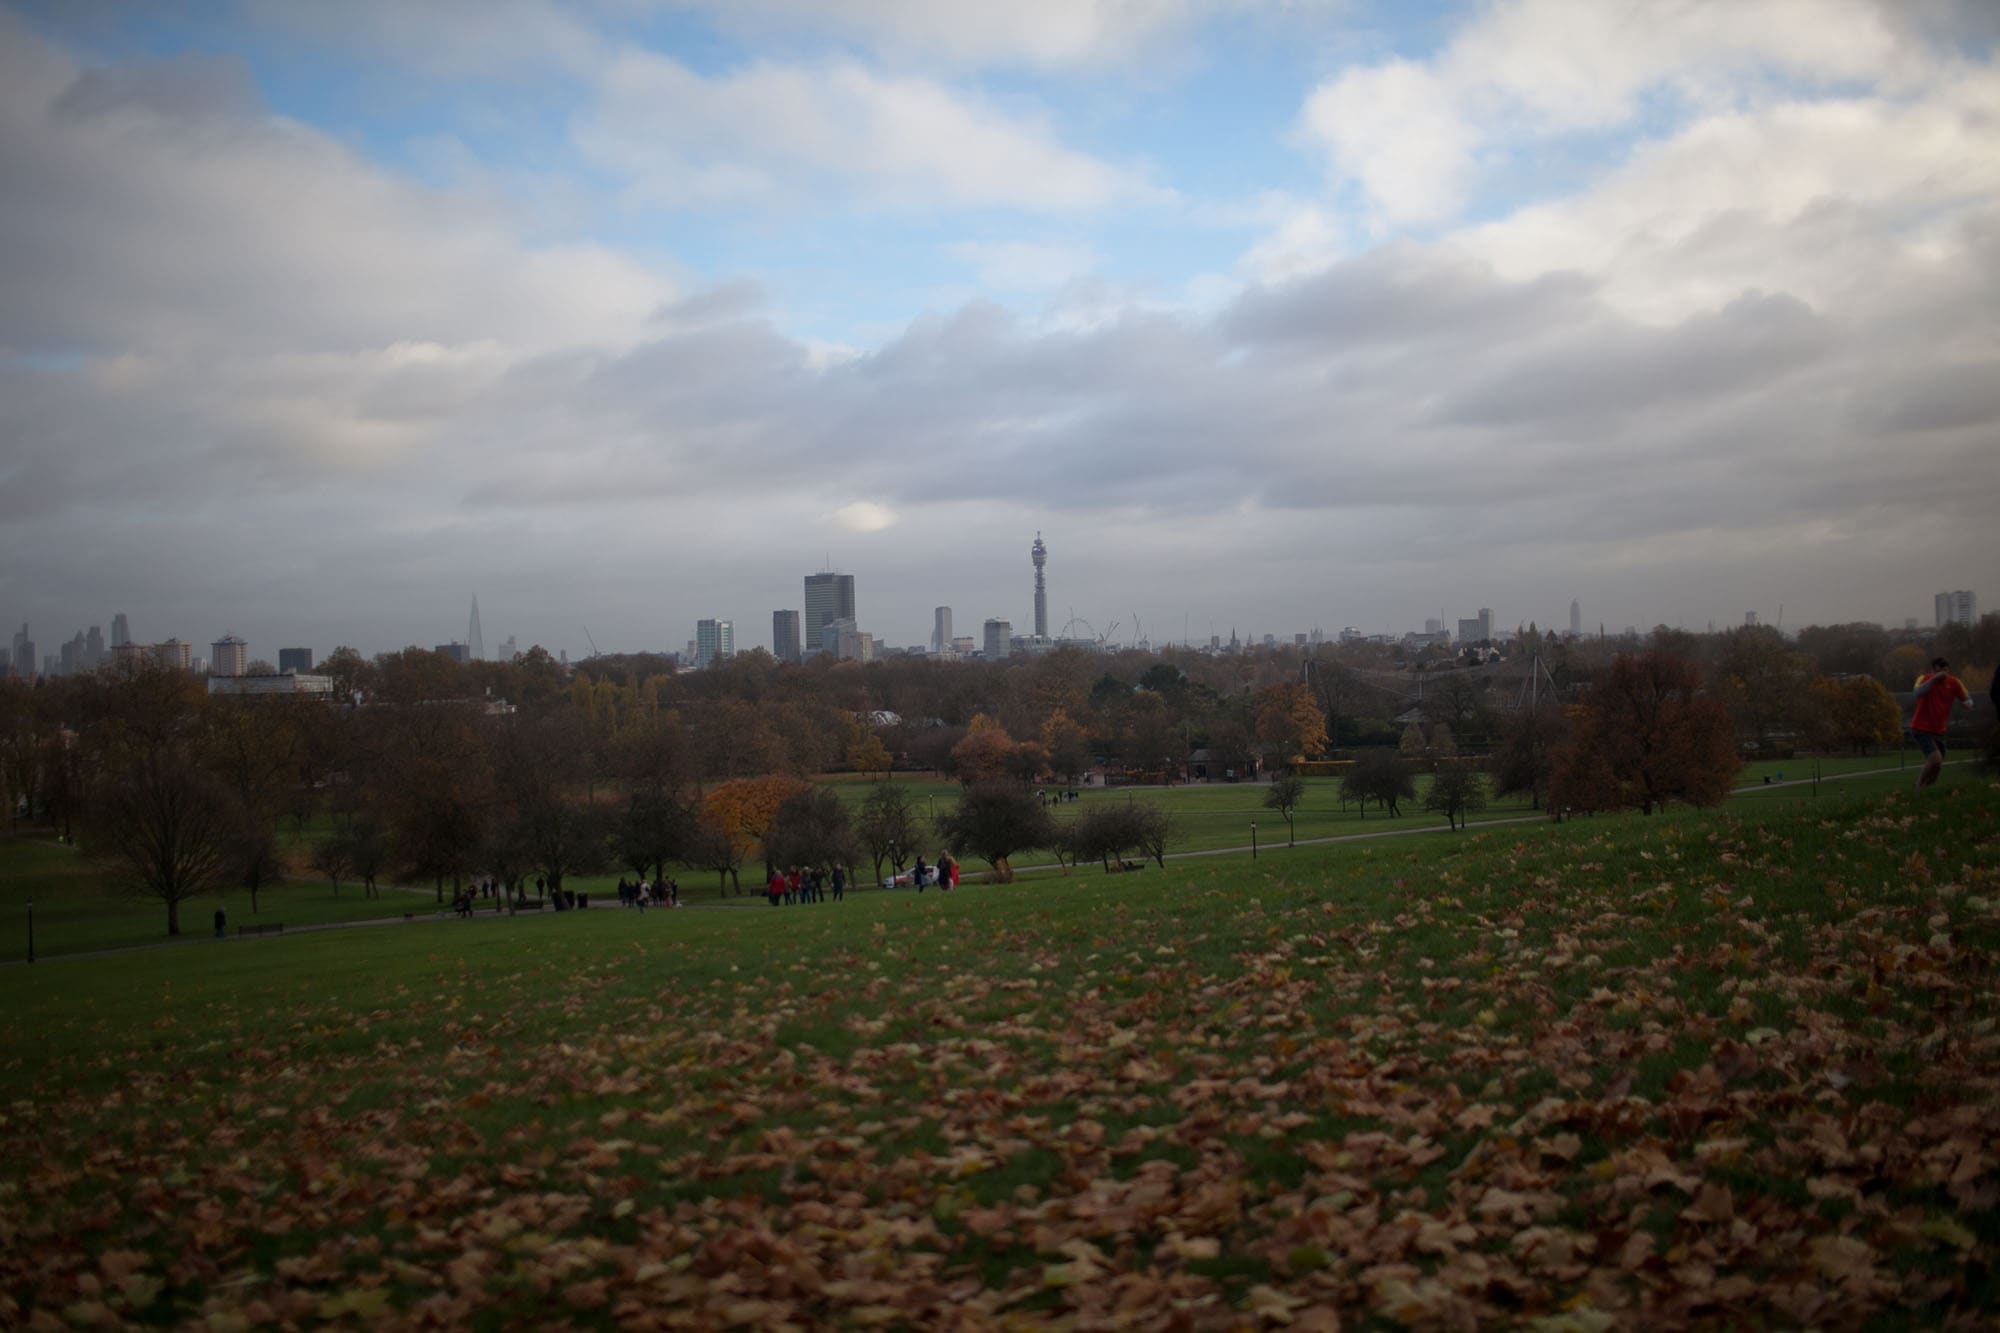 View of the city from Primrose Hill in London, England